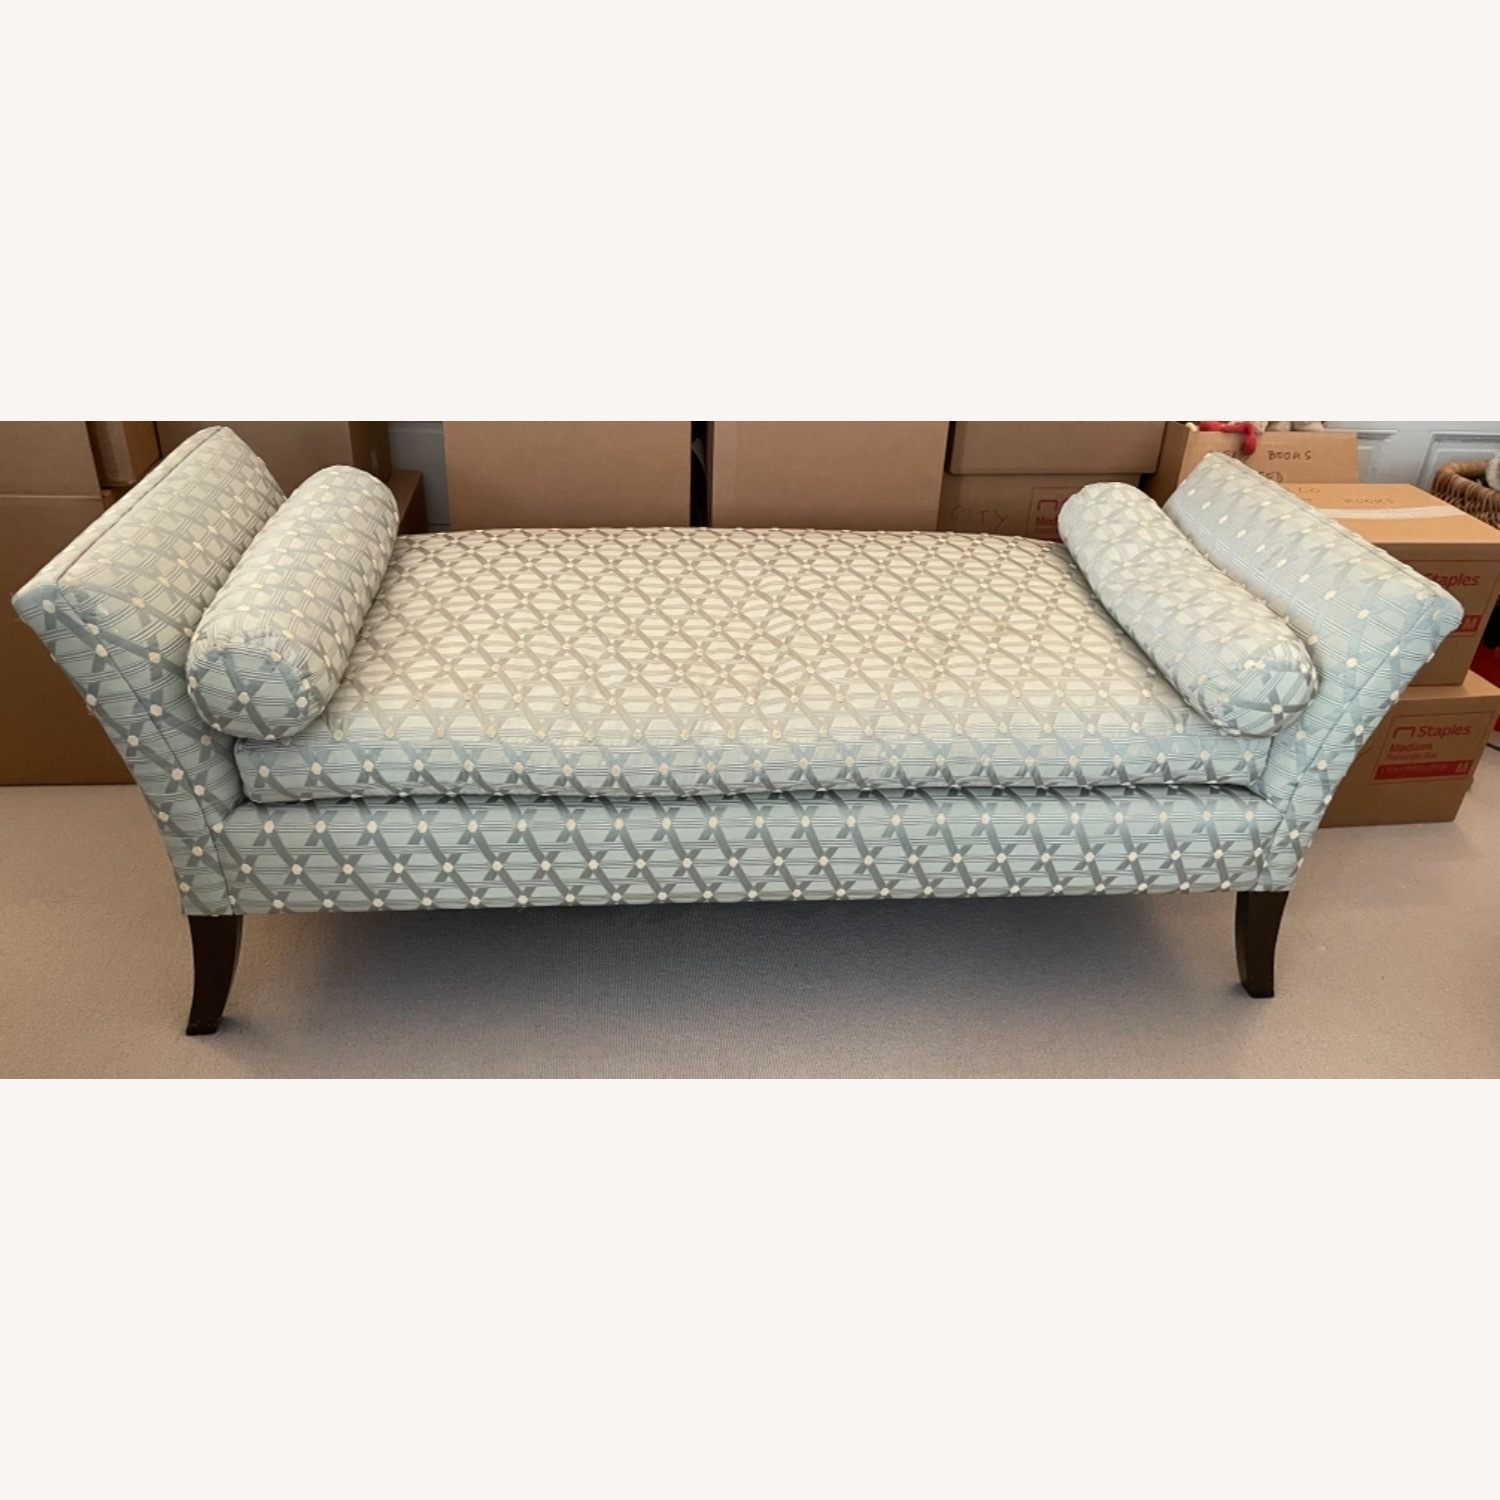 Seafoam Patterned Daybed - image-2